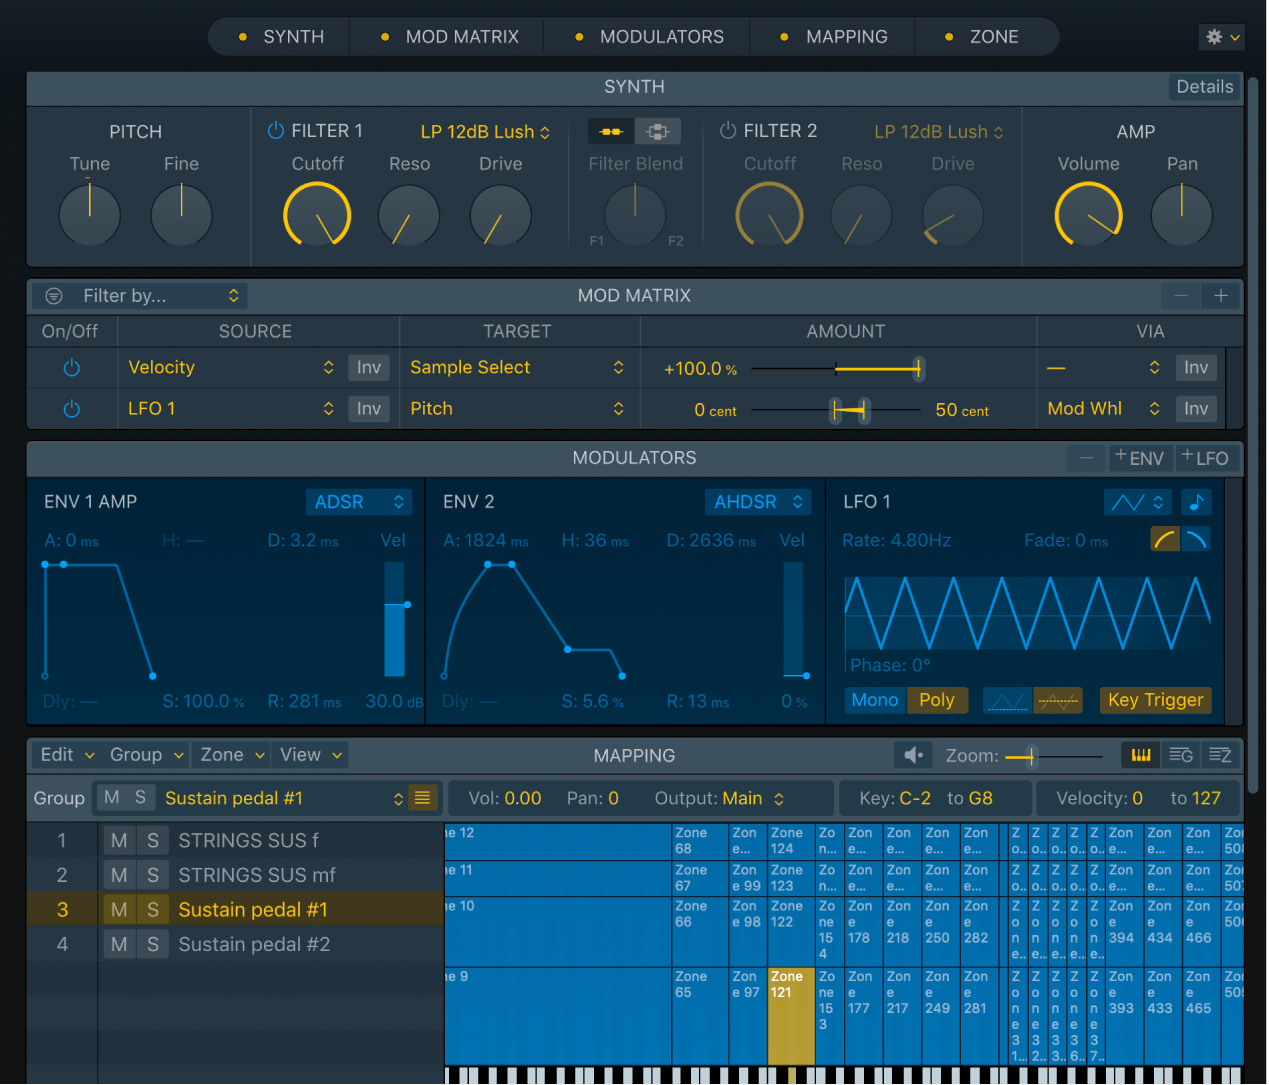 Figure. Sampler interface showing Synth, Mod Matrix, Modulators, and Mapping panes.